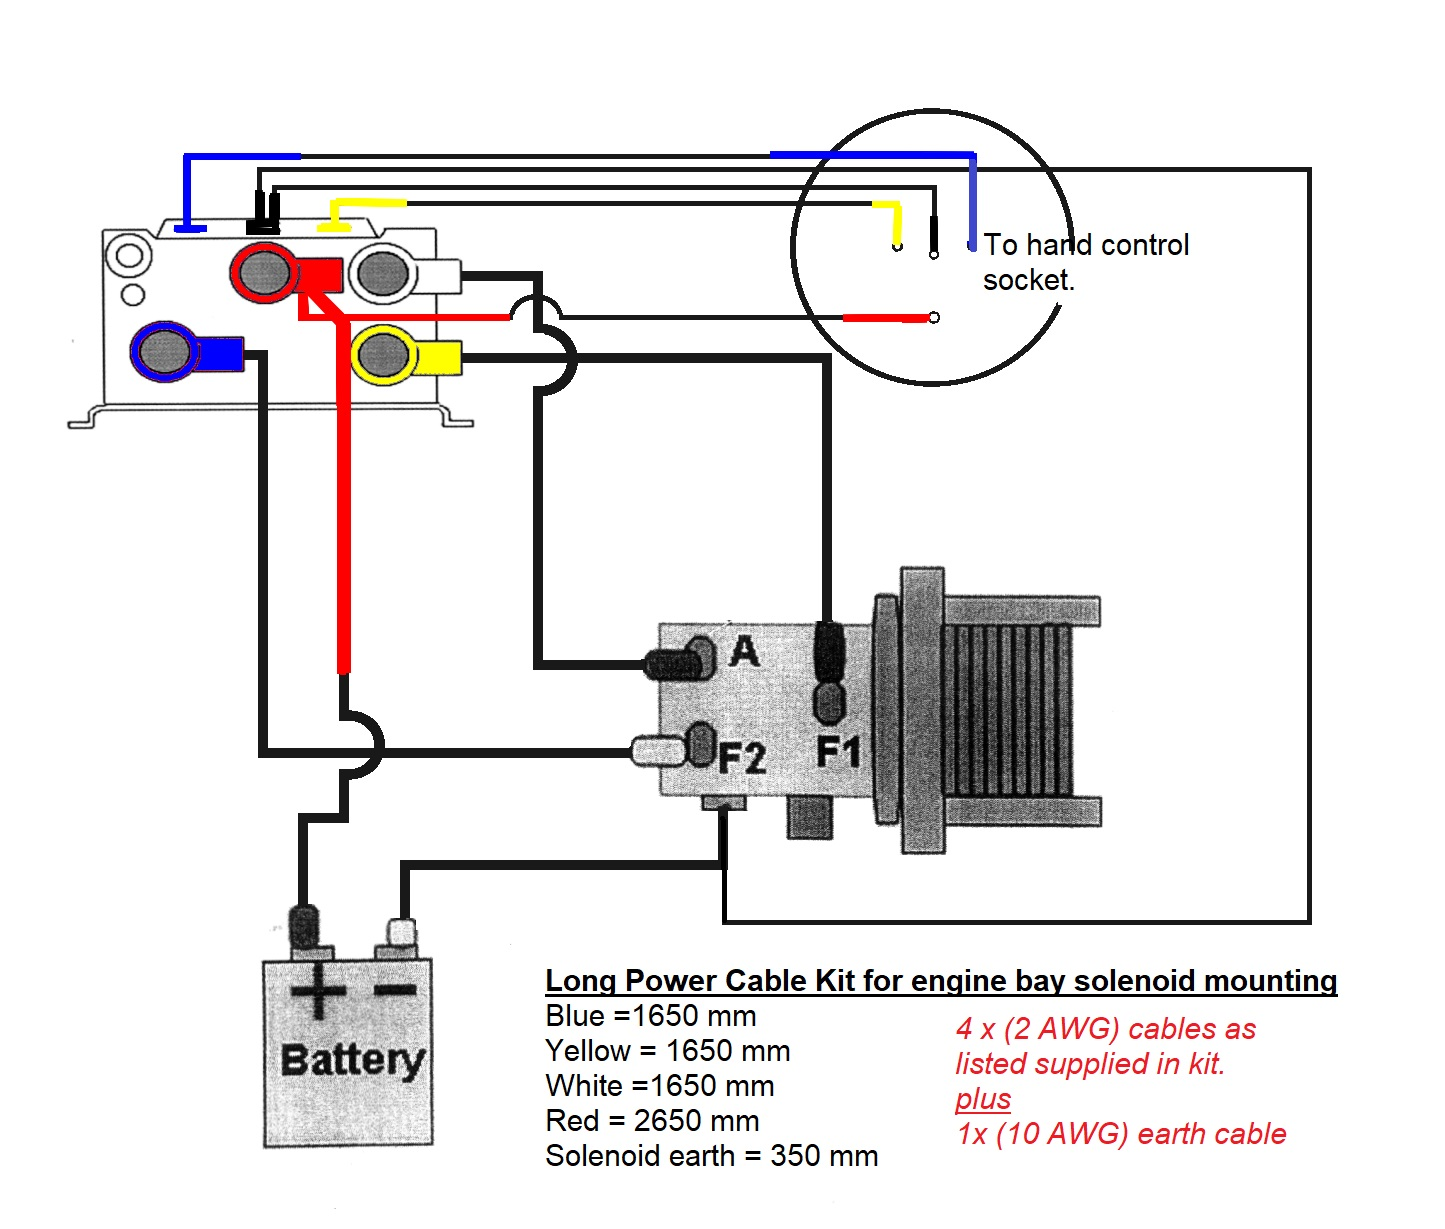 winch wiring schematic on wiring diagram winch wiring kit wiring diagram online champion winch wiring schematics winch wiring kit universal winch wiring